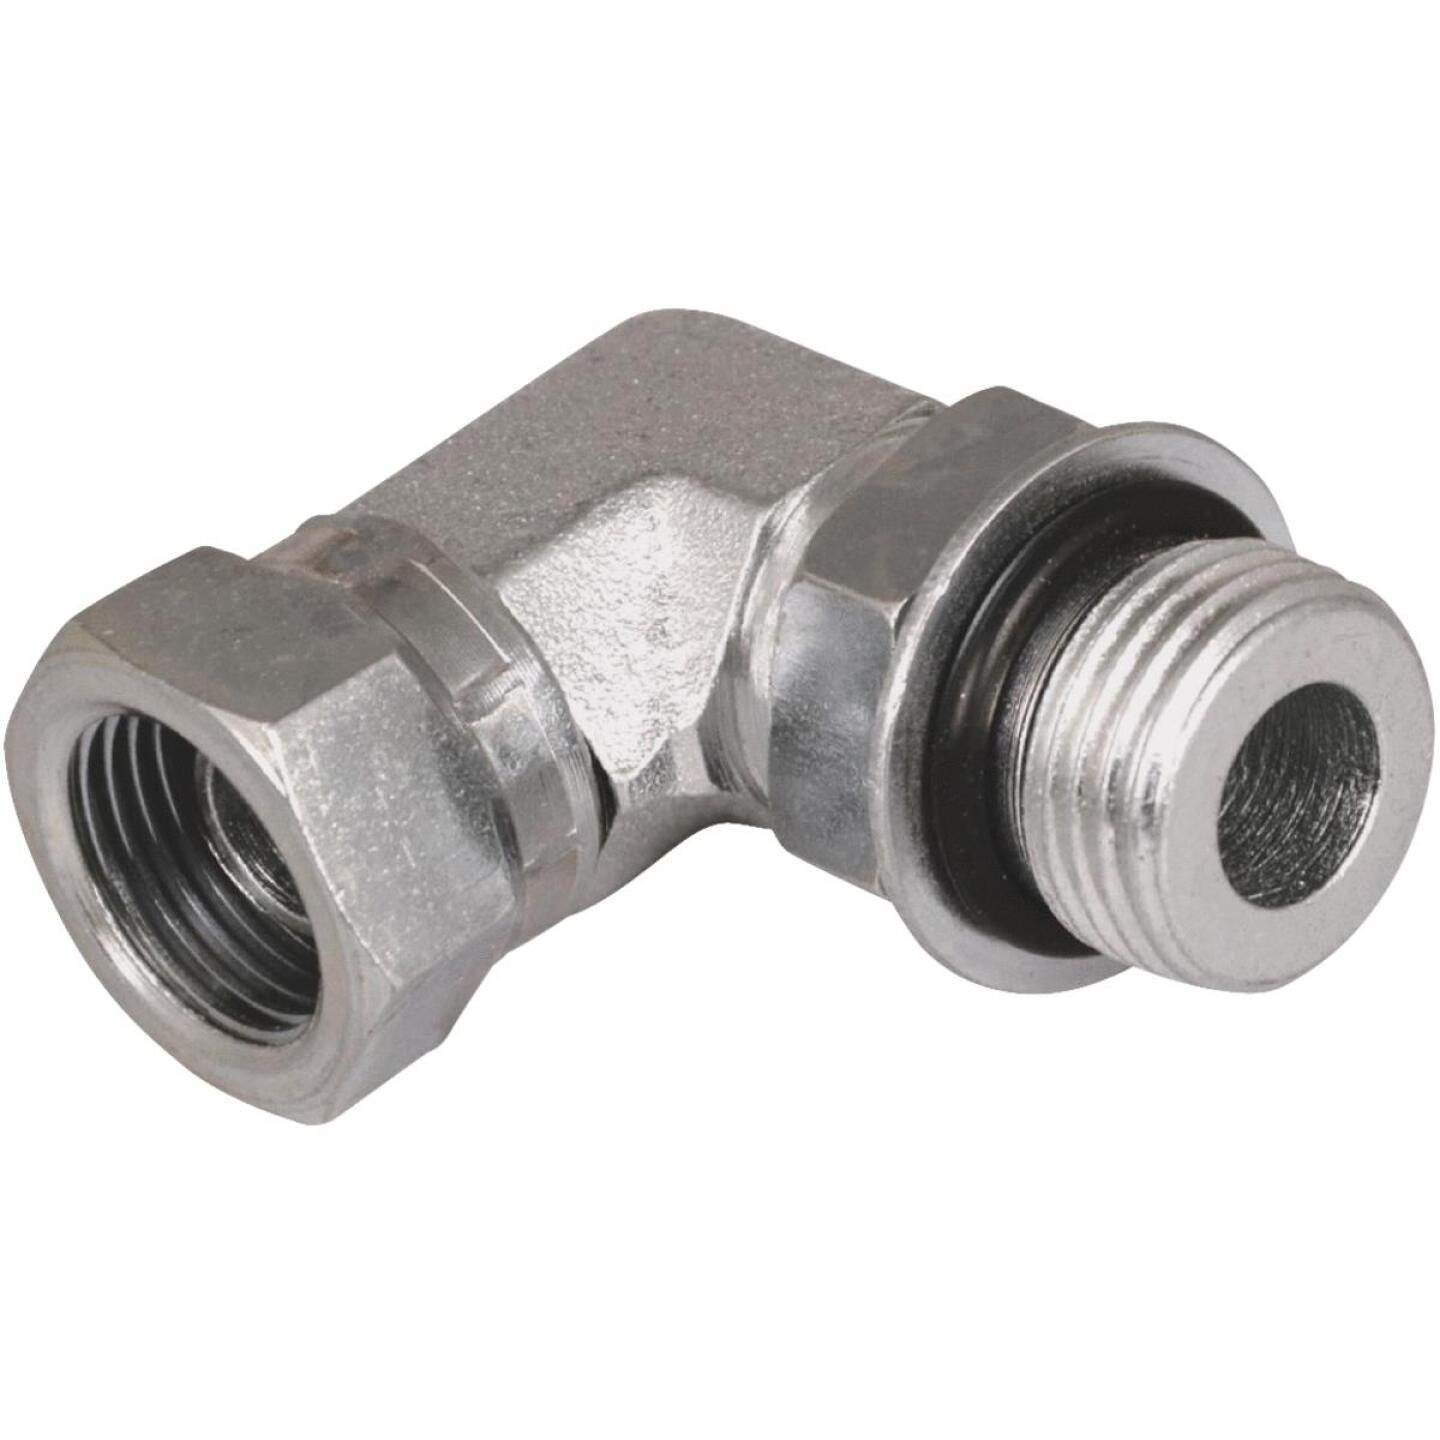 Apache 1/2 In. Male O-Ring x 1/2 In. Female Pipe Swivel 90 Deg. Hydraulic Hose Adapter Image 1